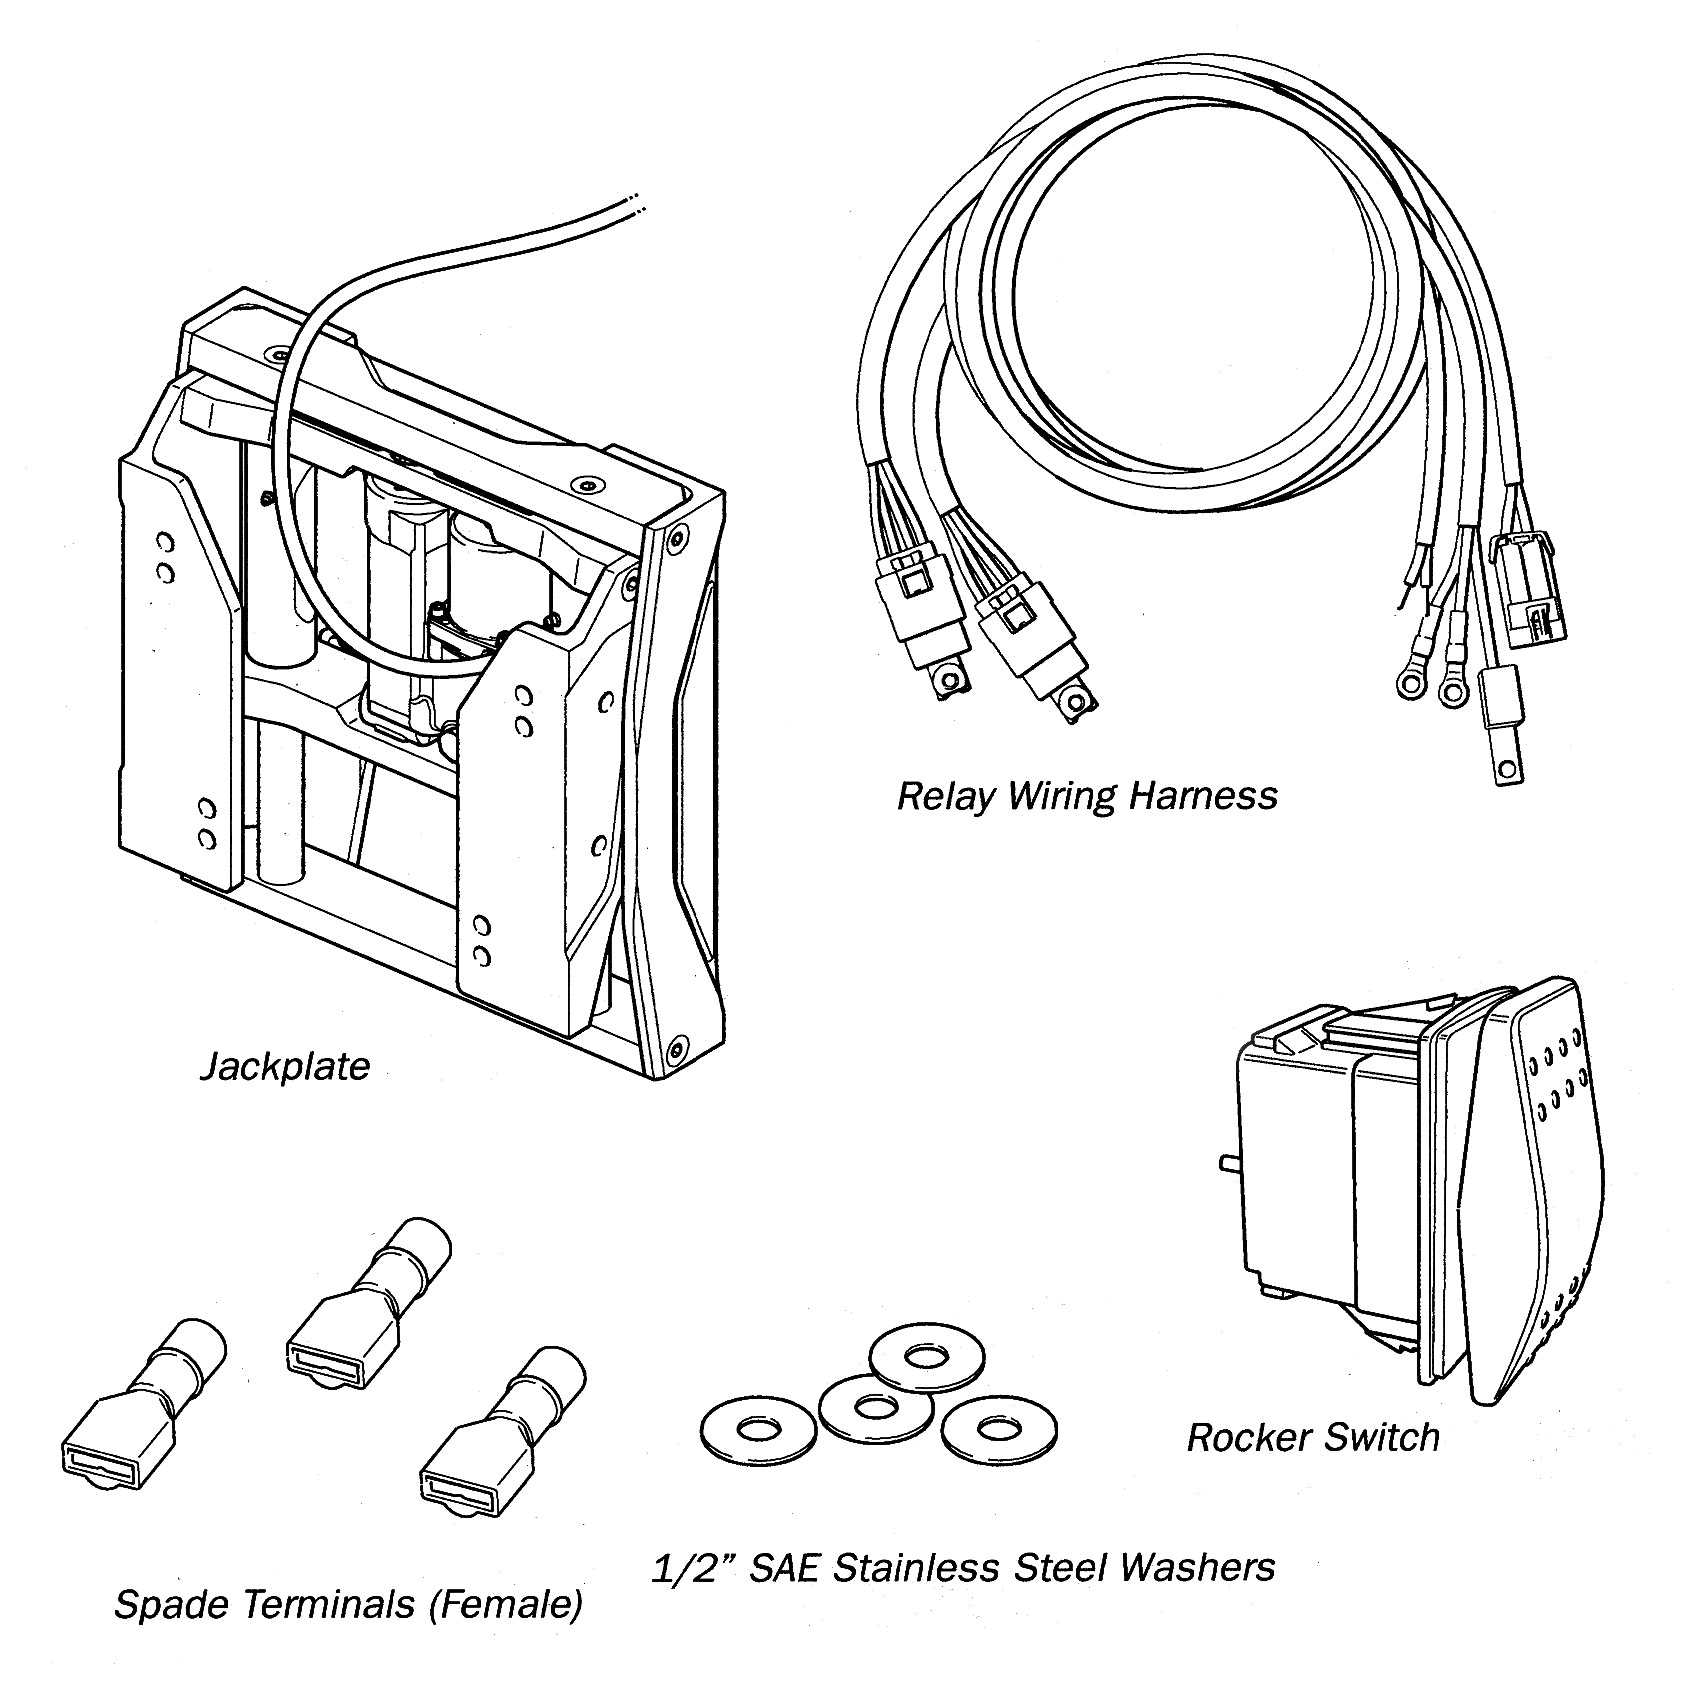 Atlas Jack Plate Wiring Diagram Wiring Diagram Third Level